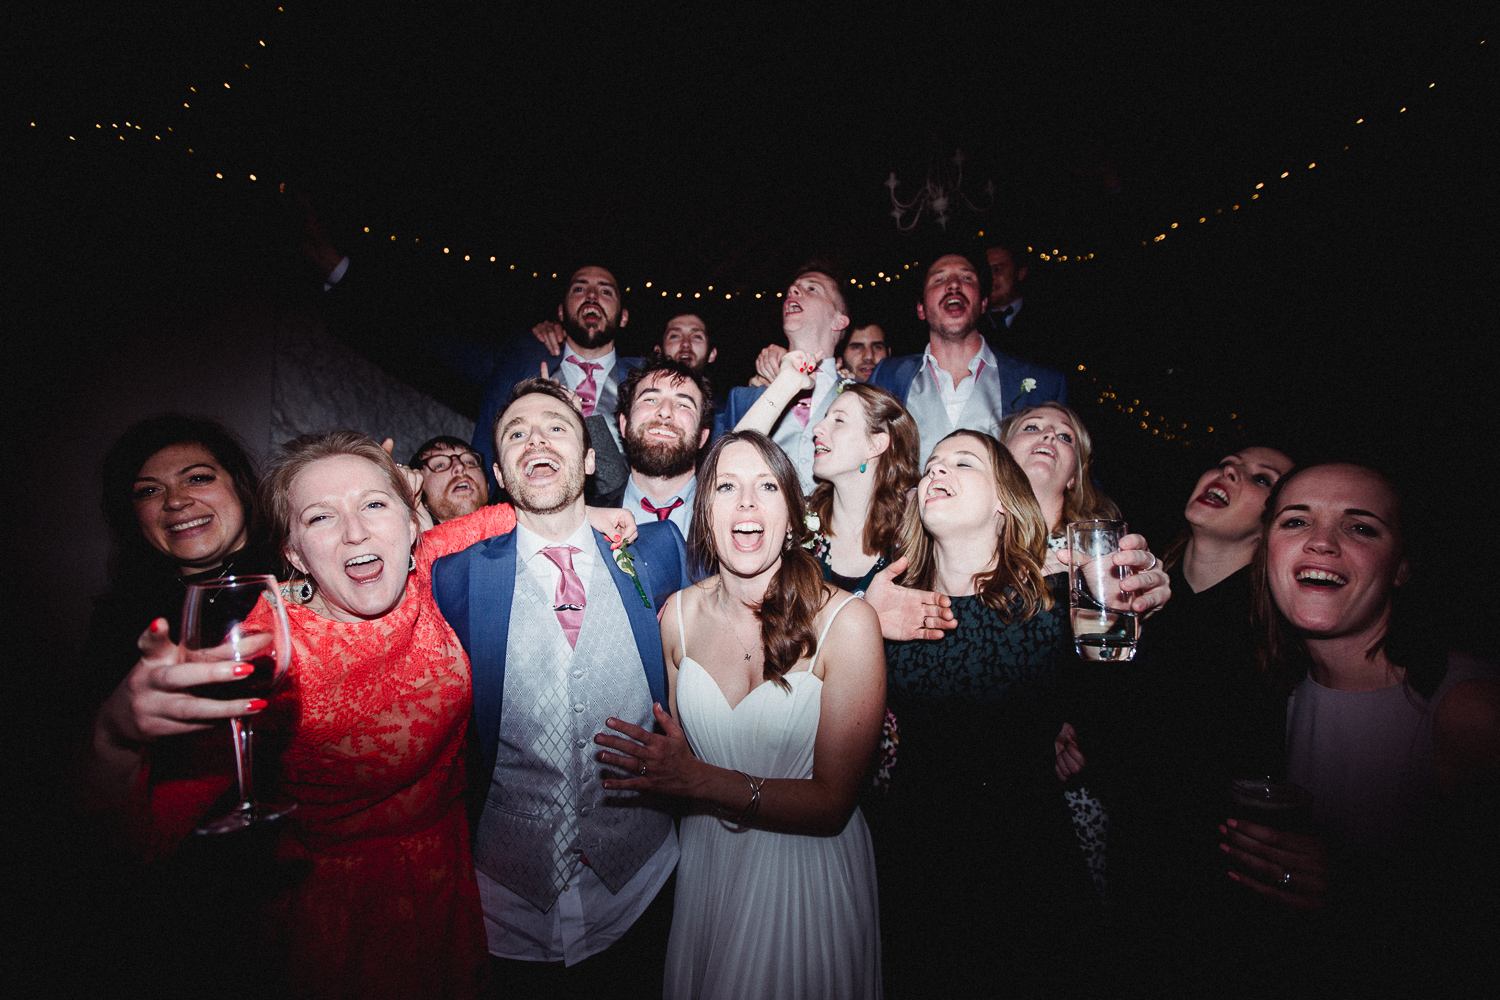 The_Old_Barn_North_Devon_Wedding_Photographer-71.jpg